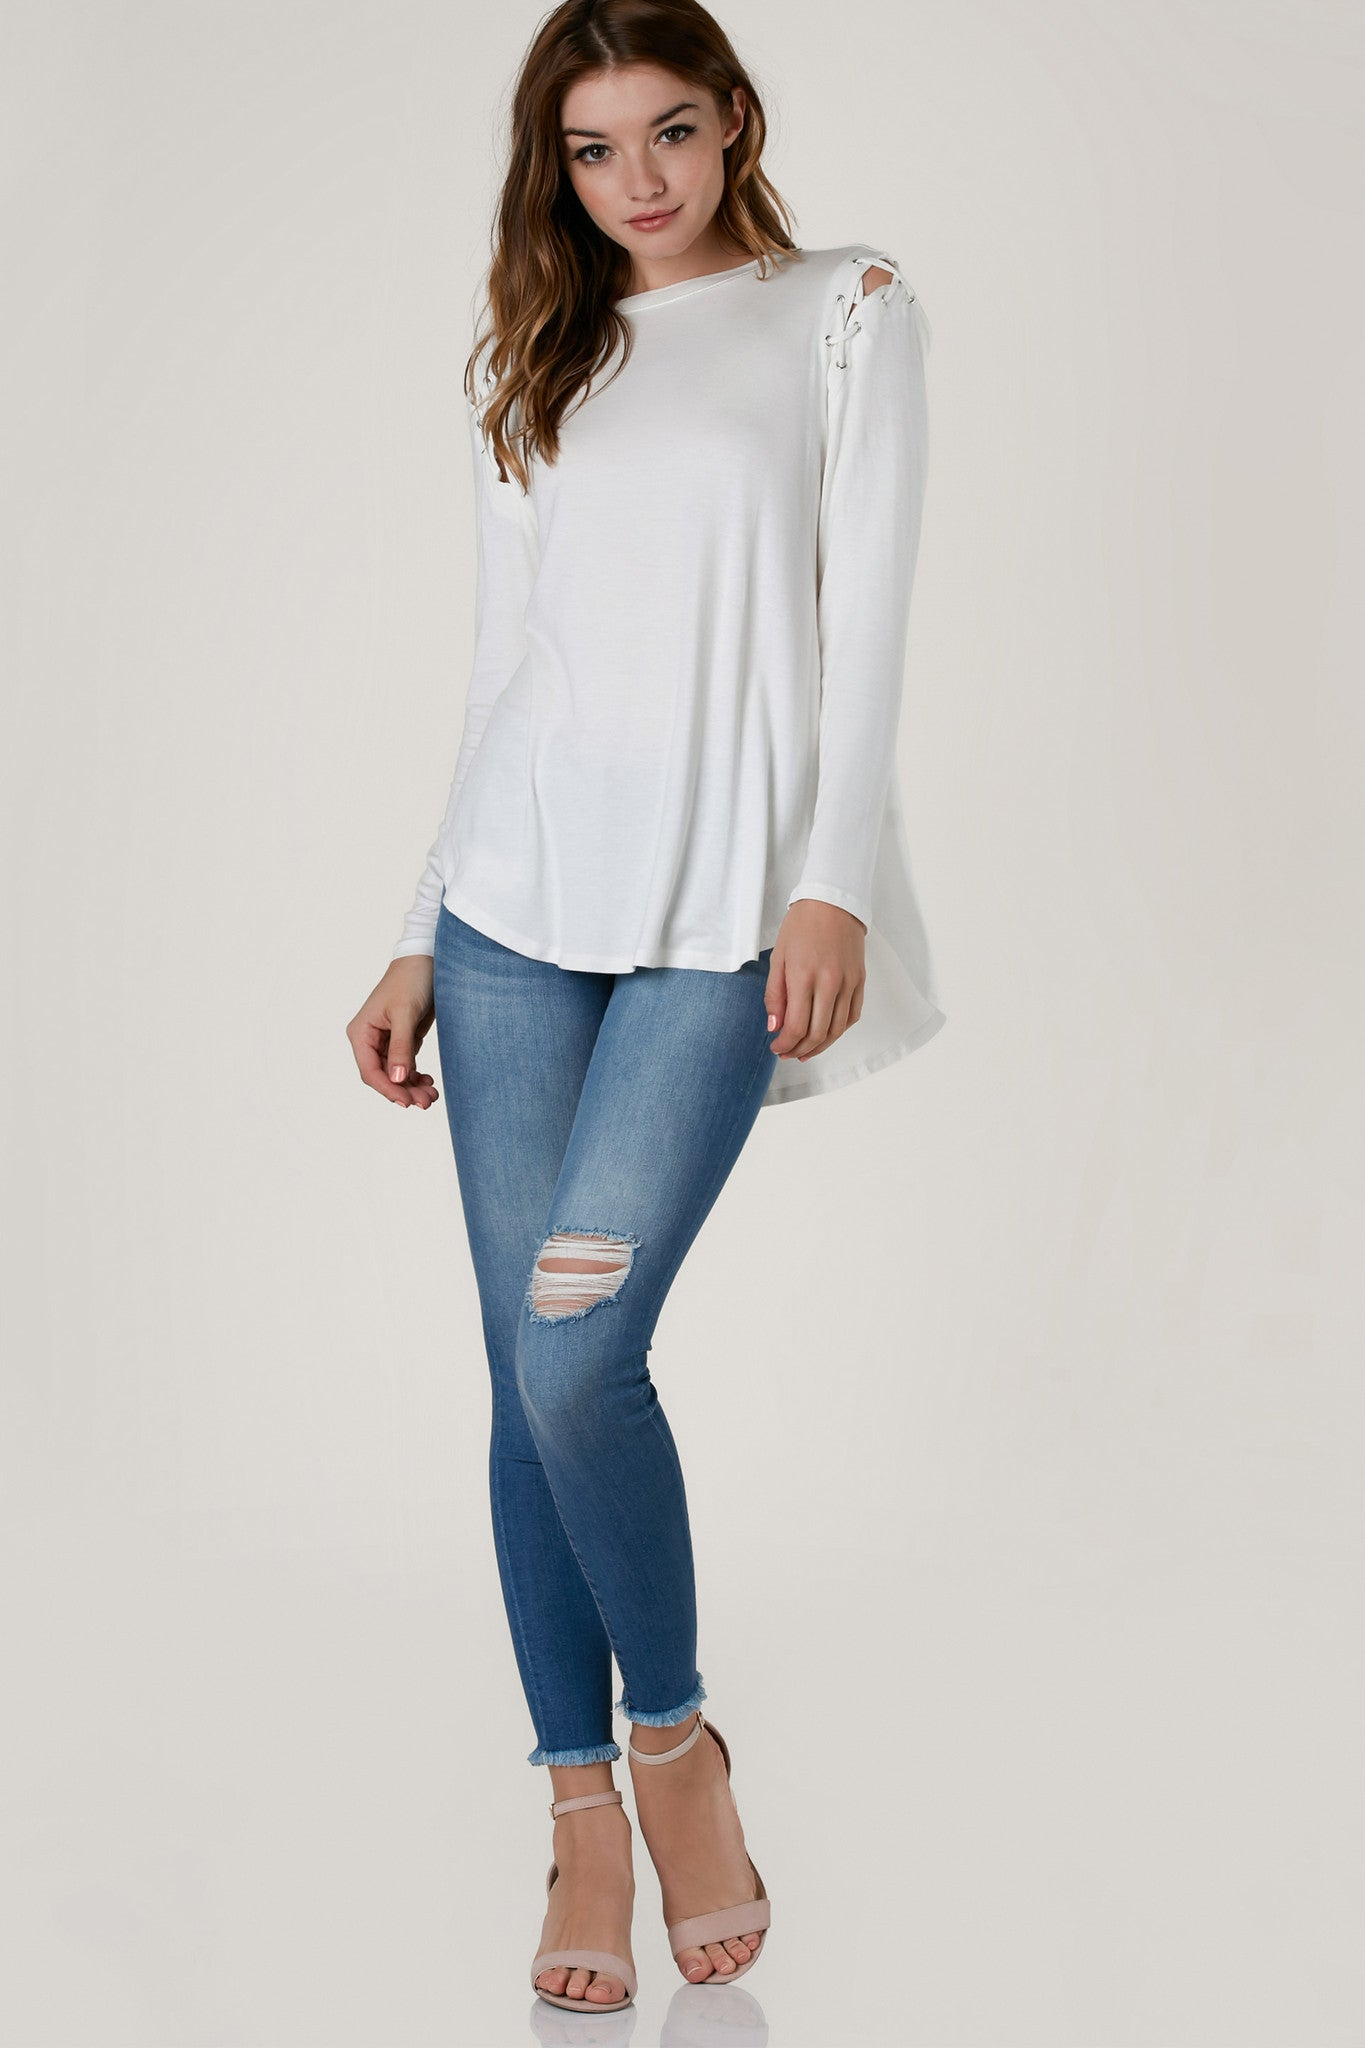 Low rise skinny jeans with comfortable stretchy fit. Soft distressing with frayed raw hem finish.